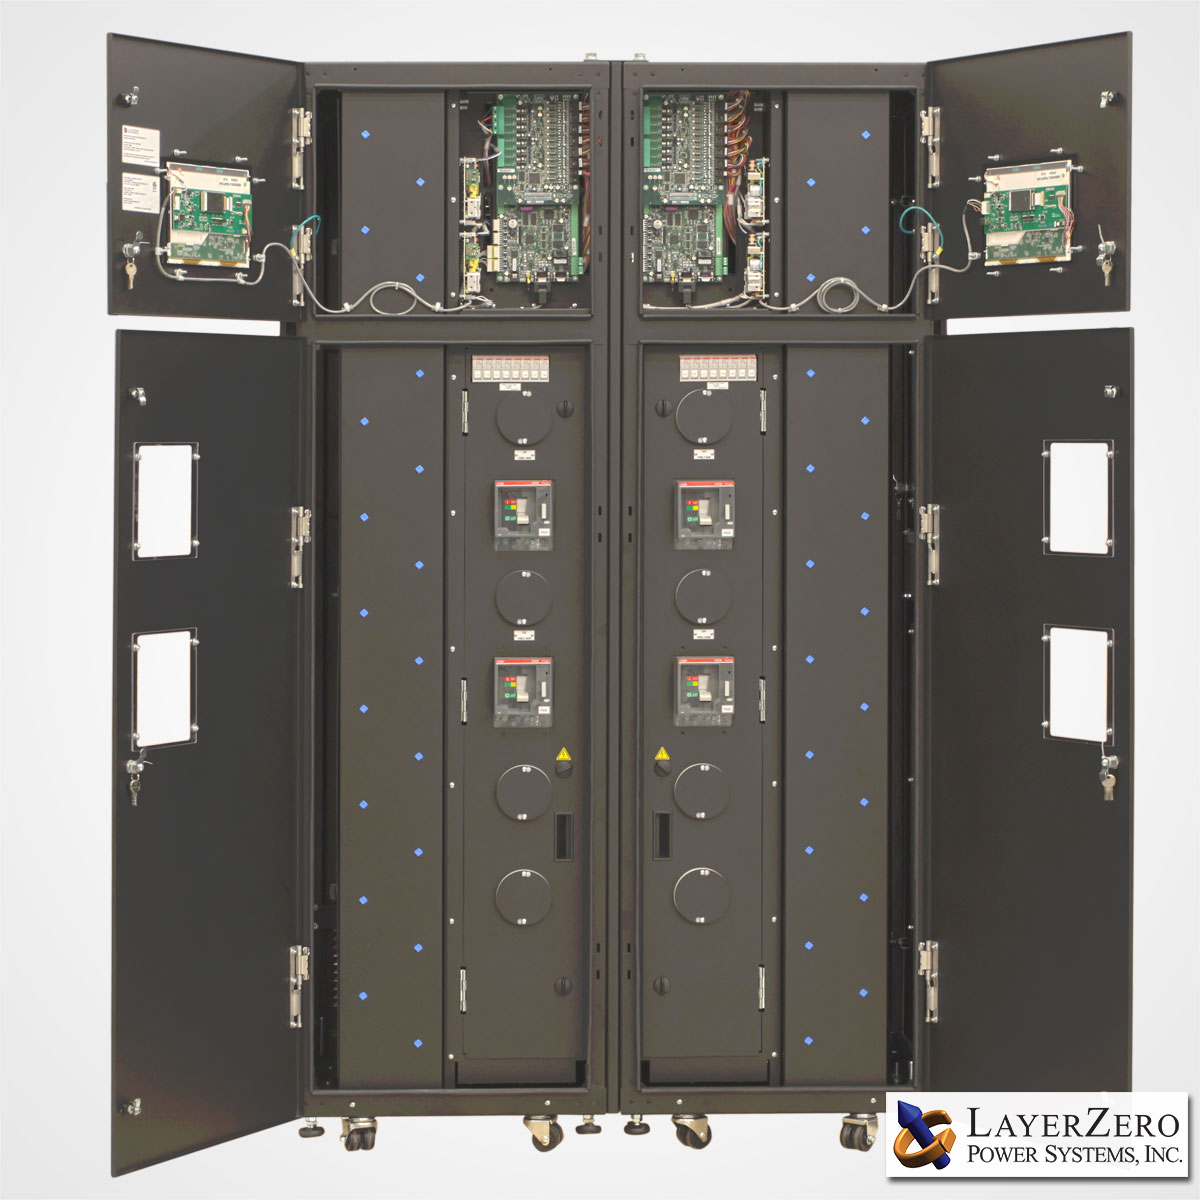 Two LayerZero Series 70: eRPP-FS Cabinets Side-By-Side Outer Doors Open.